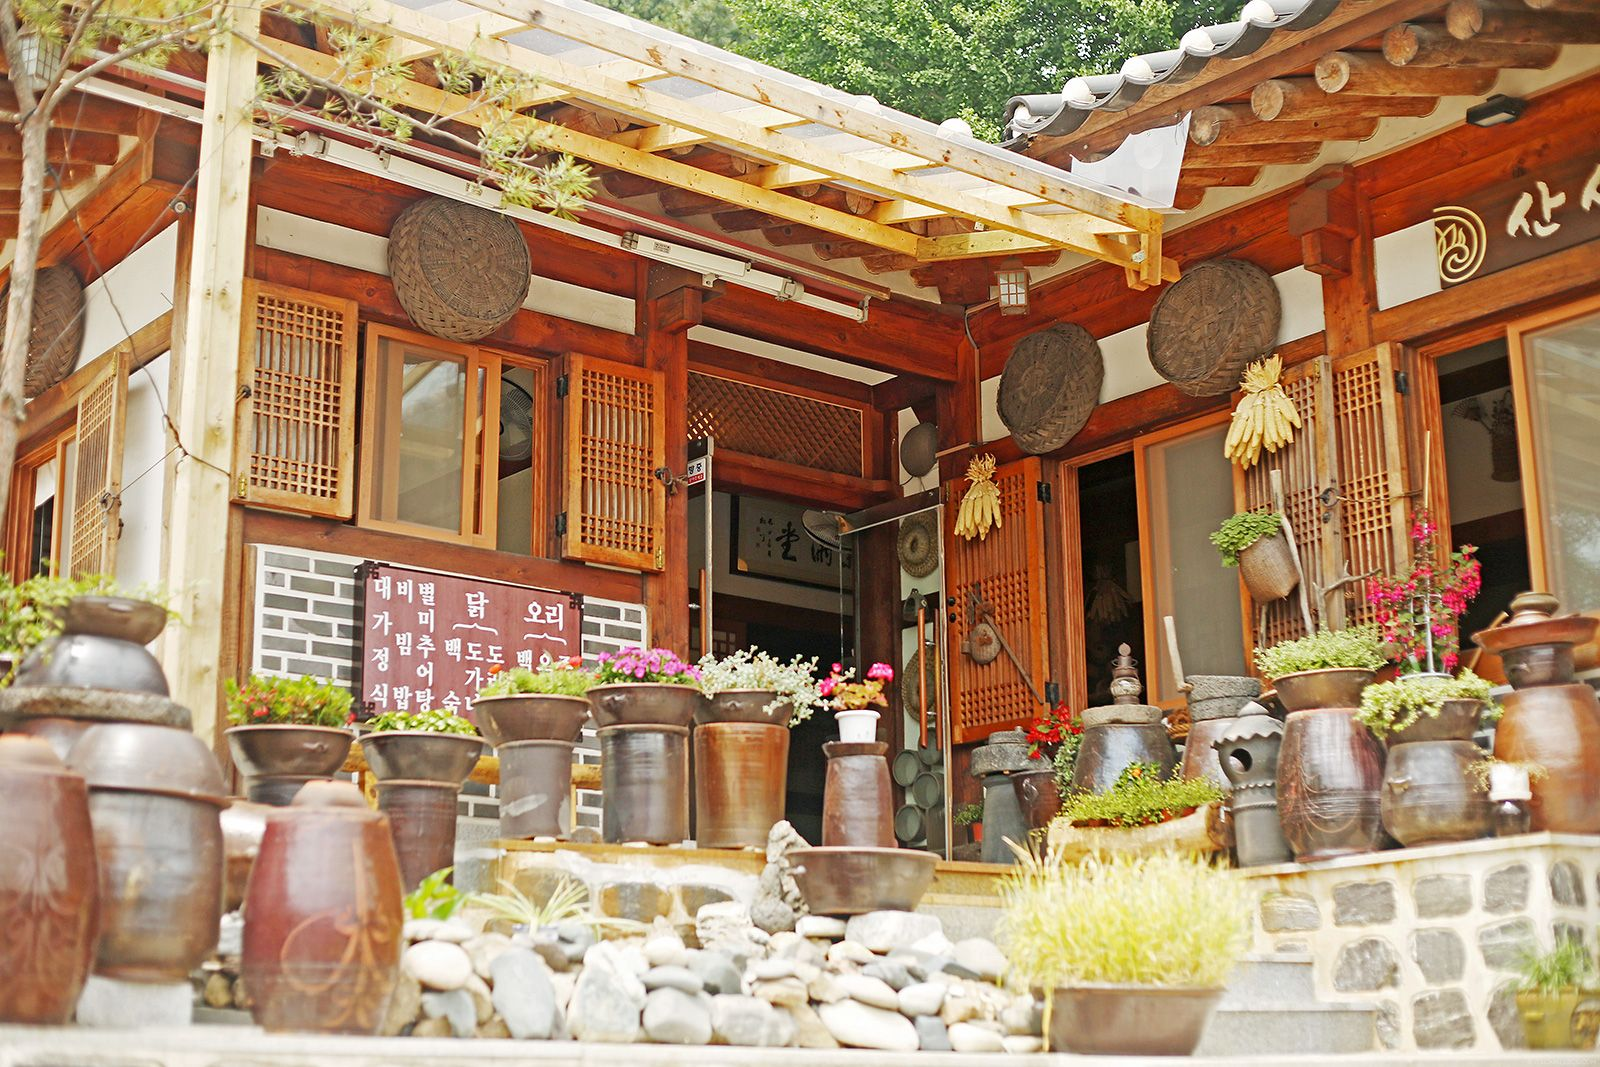 Travel Diary: Experiencing Korea's Old And New | itscamilleco.com